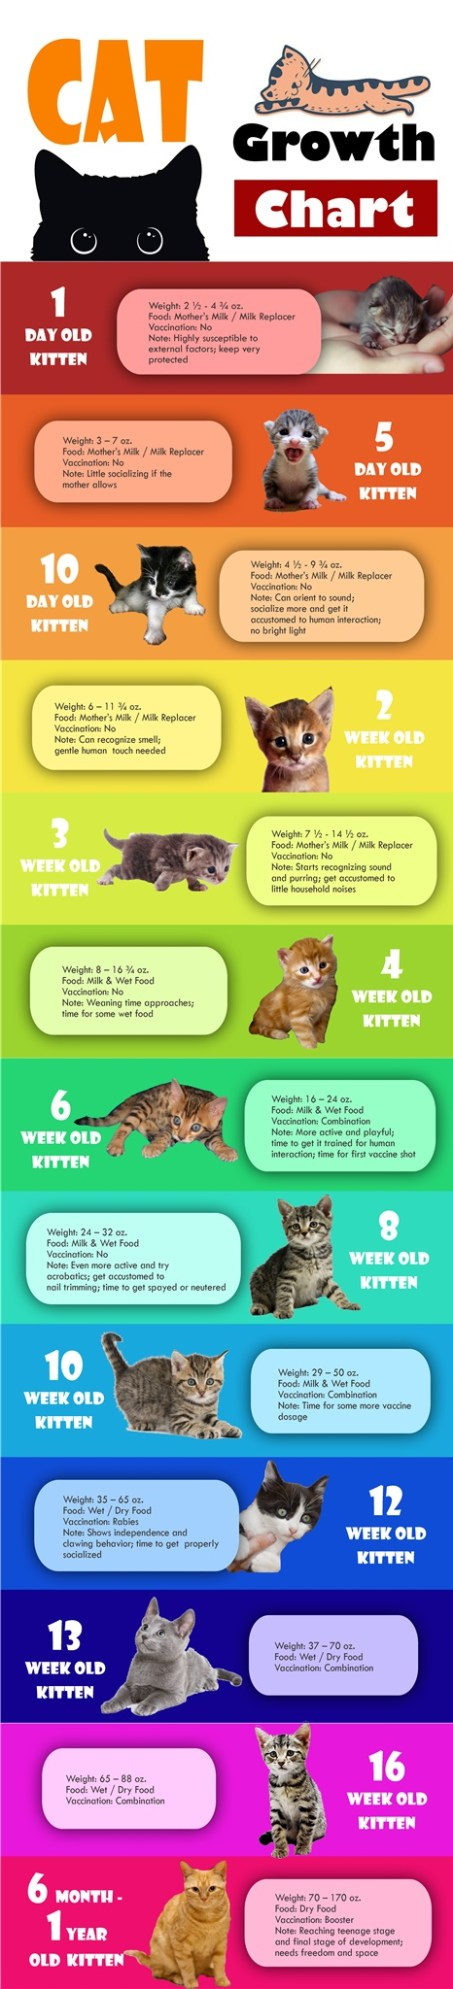 Infographic Kitten Cat Growth Chart By Age Weight And Food Cat Infographic Kitten Kitten Care